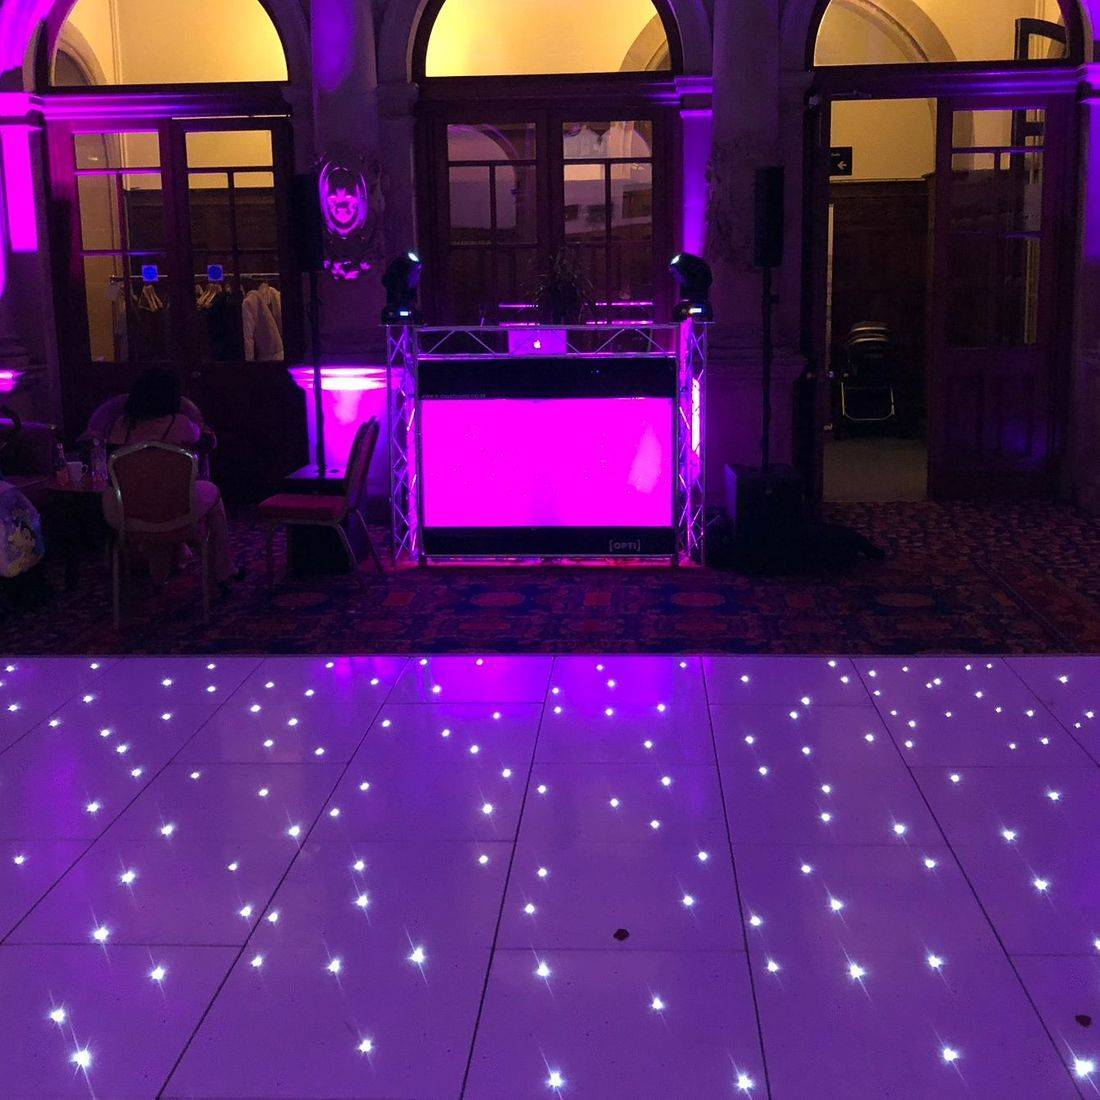 Wedding DJ across Birmingham Stourport  Bromsgrove Black Country Stourport Manor Coventry Cheshire Dudley  Redditch   Solihull Stourbridge Staffordshire Statford Upon Avon  Sutton Coldfield Wolverhampton Walsall Warick London   all area's covered as well as other locations throughout the West Midlands